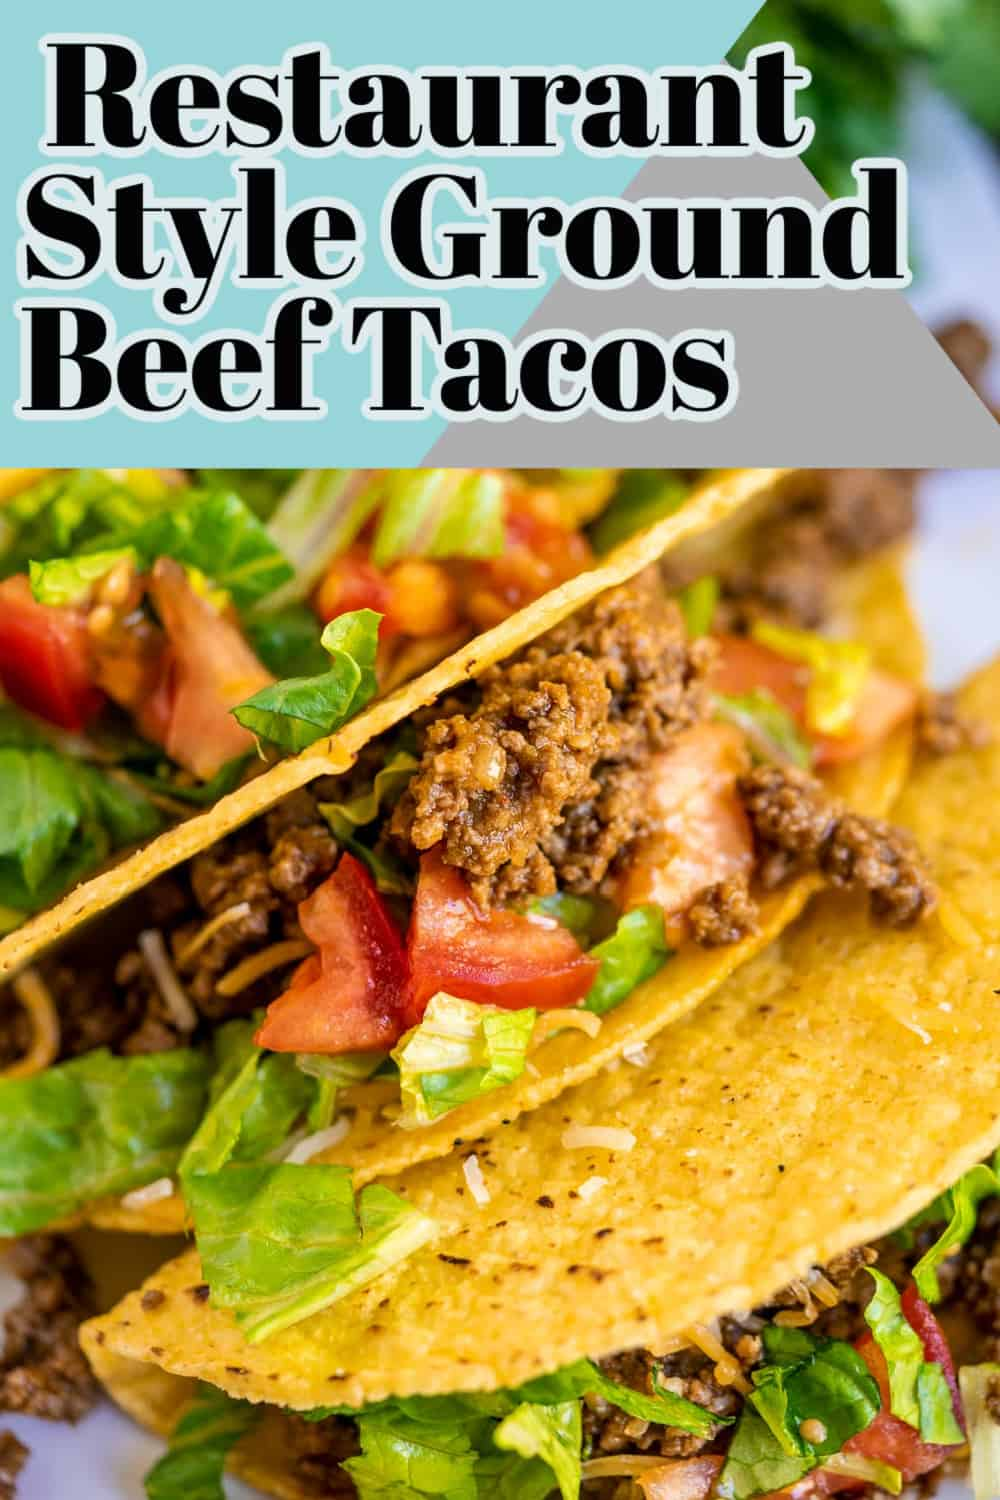 This is the recipe I reach for most often when we're making ground beef tacos or burritos. It's full of flavor, saucy, totally delicious! via @hlikesfood